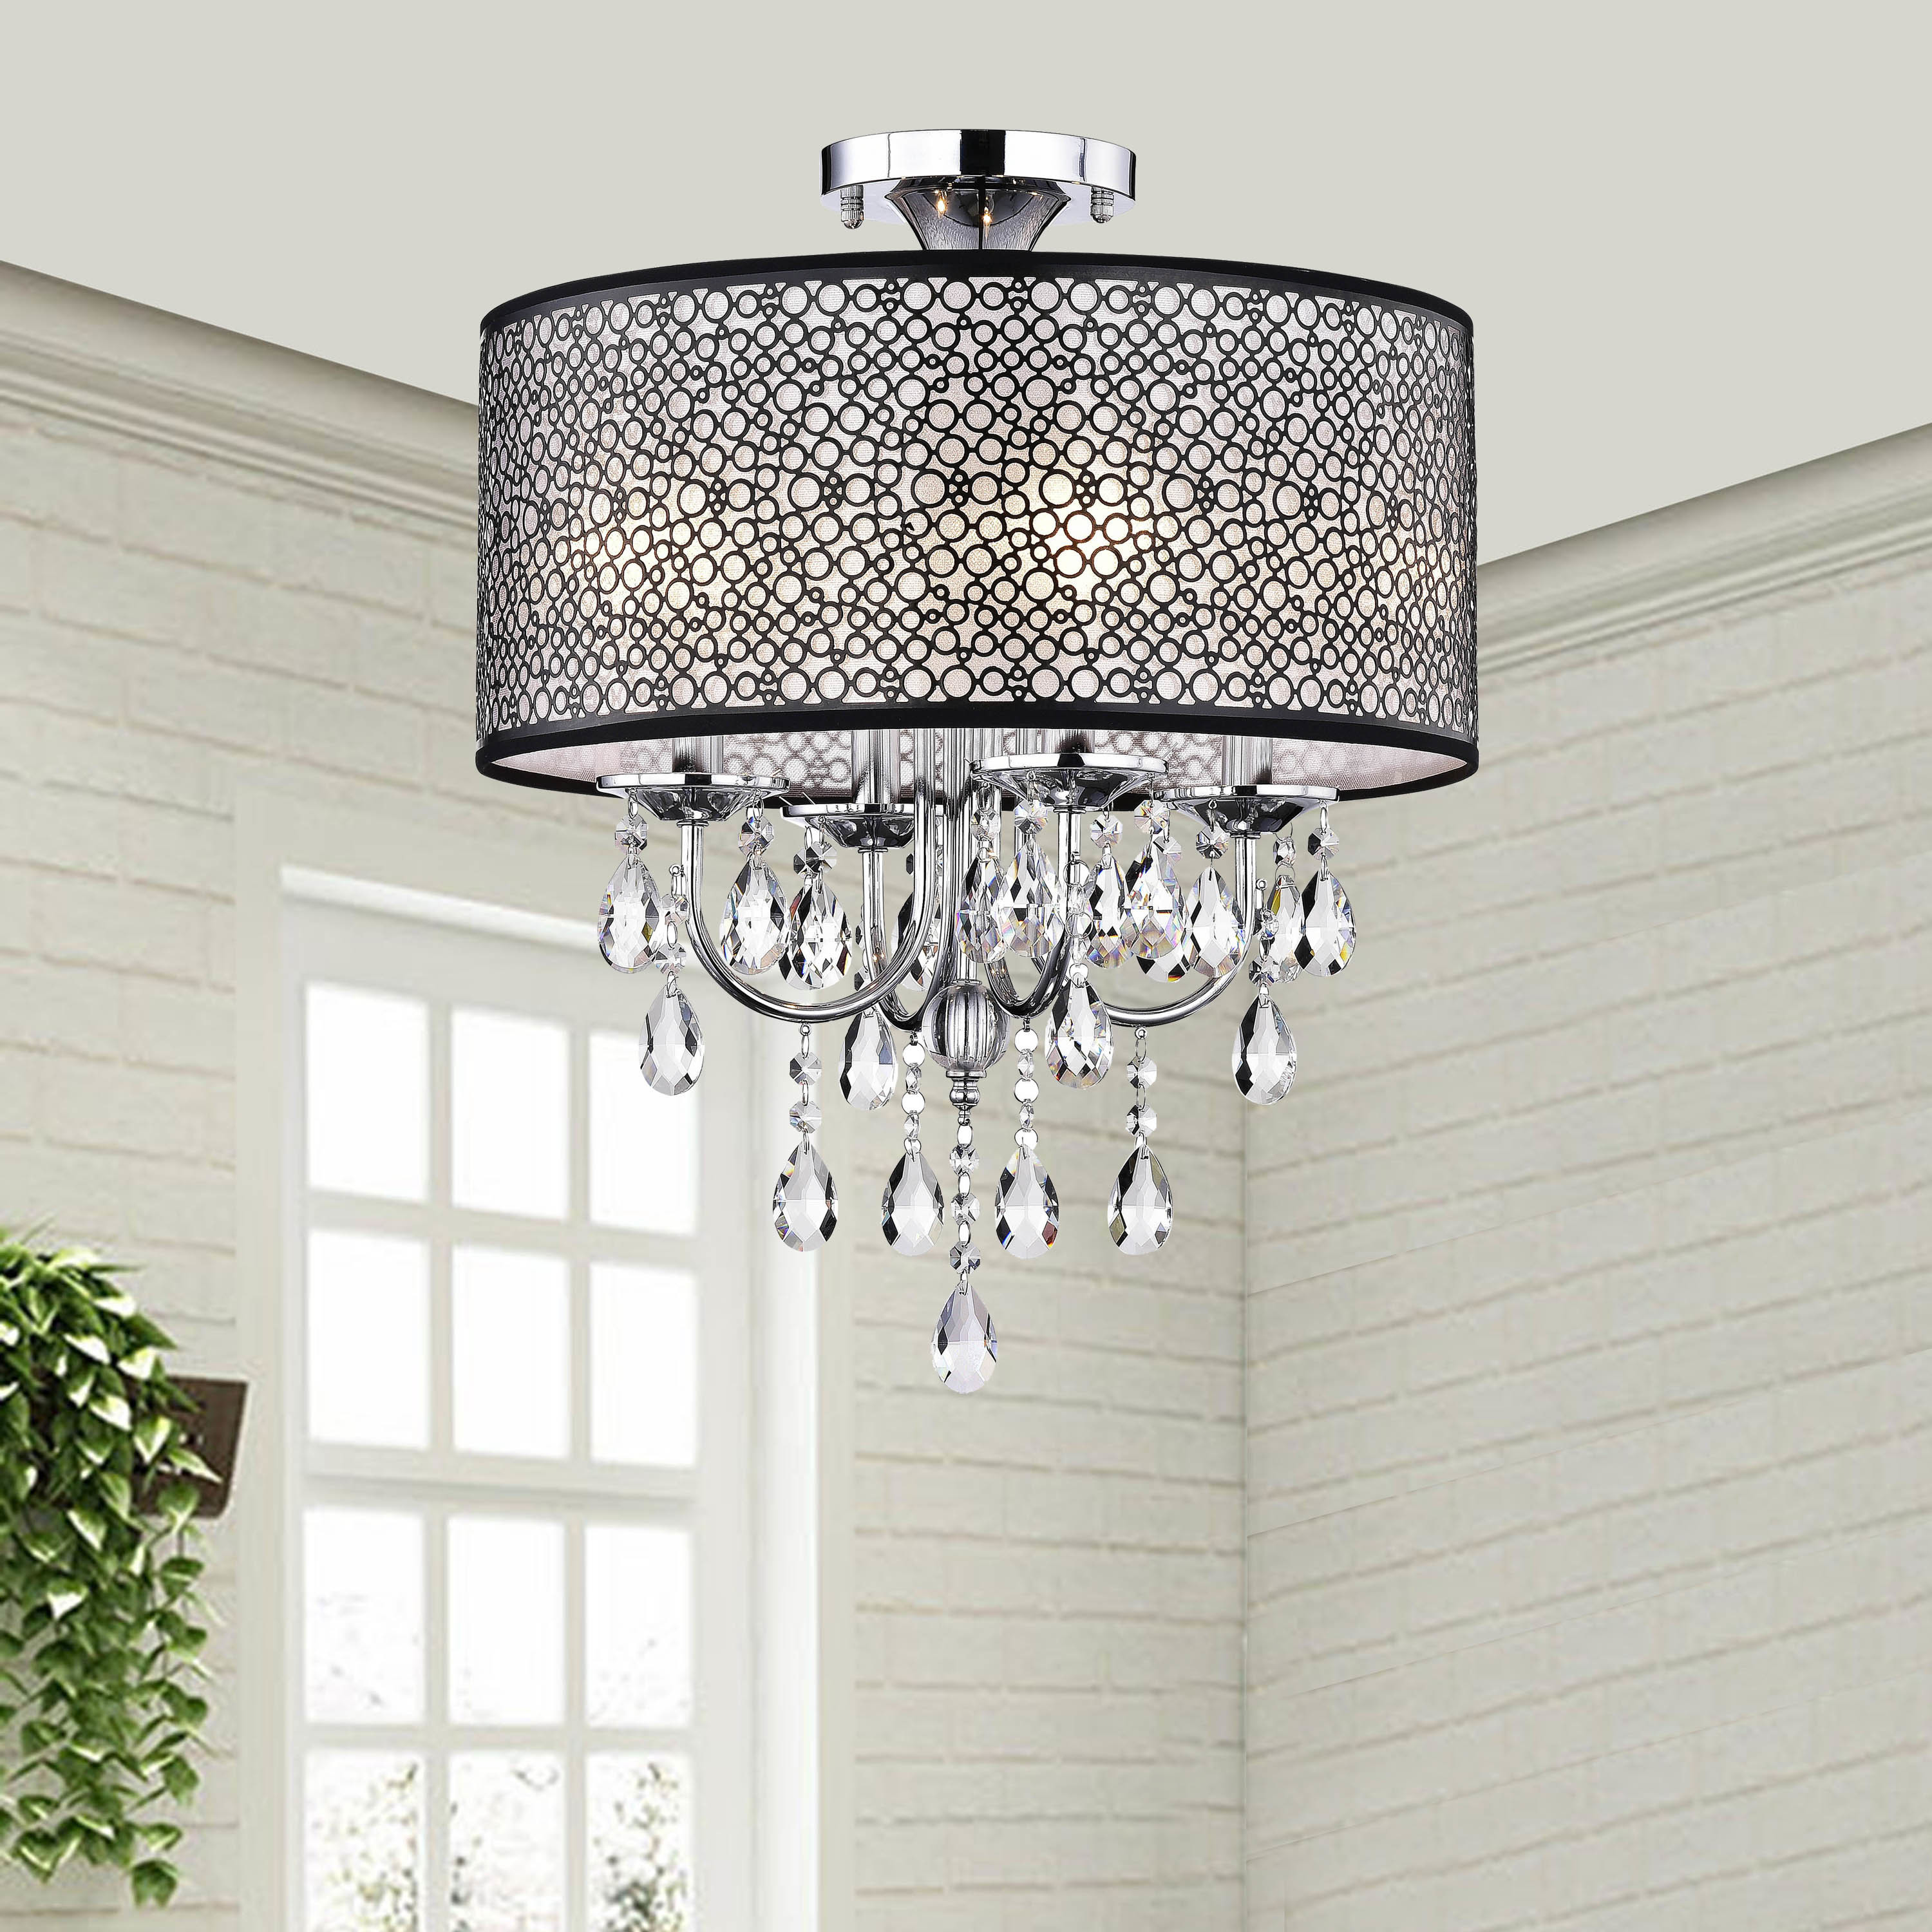 Silver Orchid Taylor Bubble Shade Crystal And Chrome Flushmount Chandelier Bronze Finish